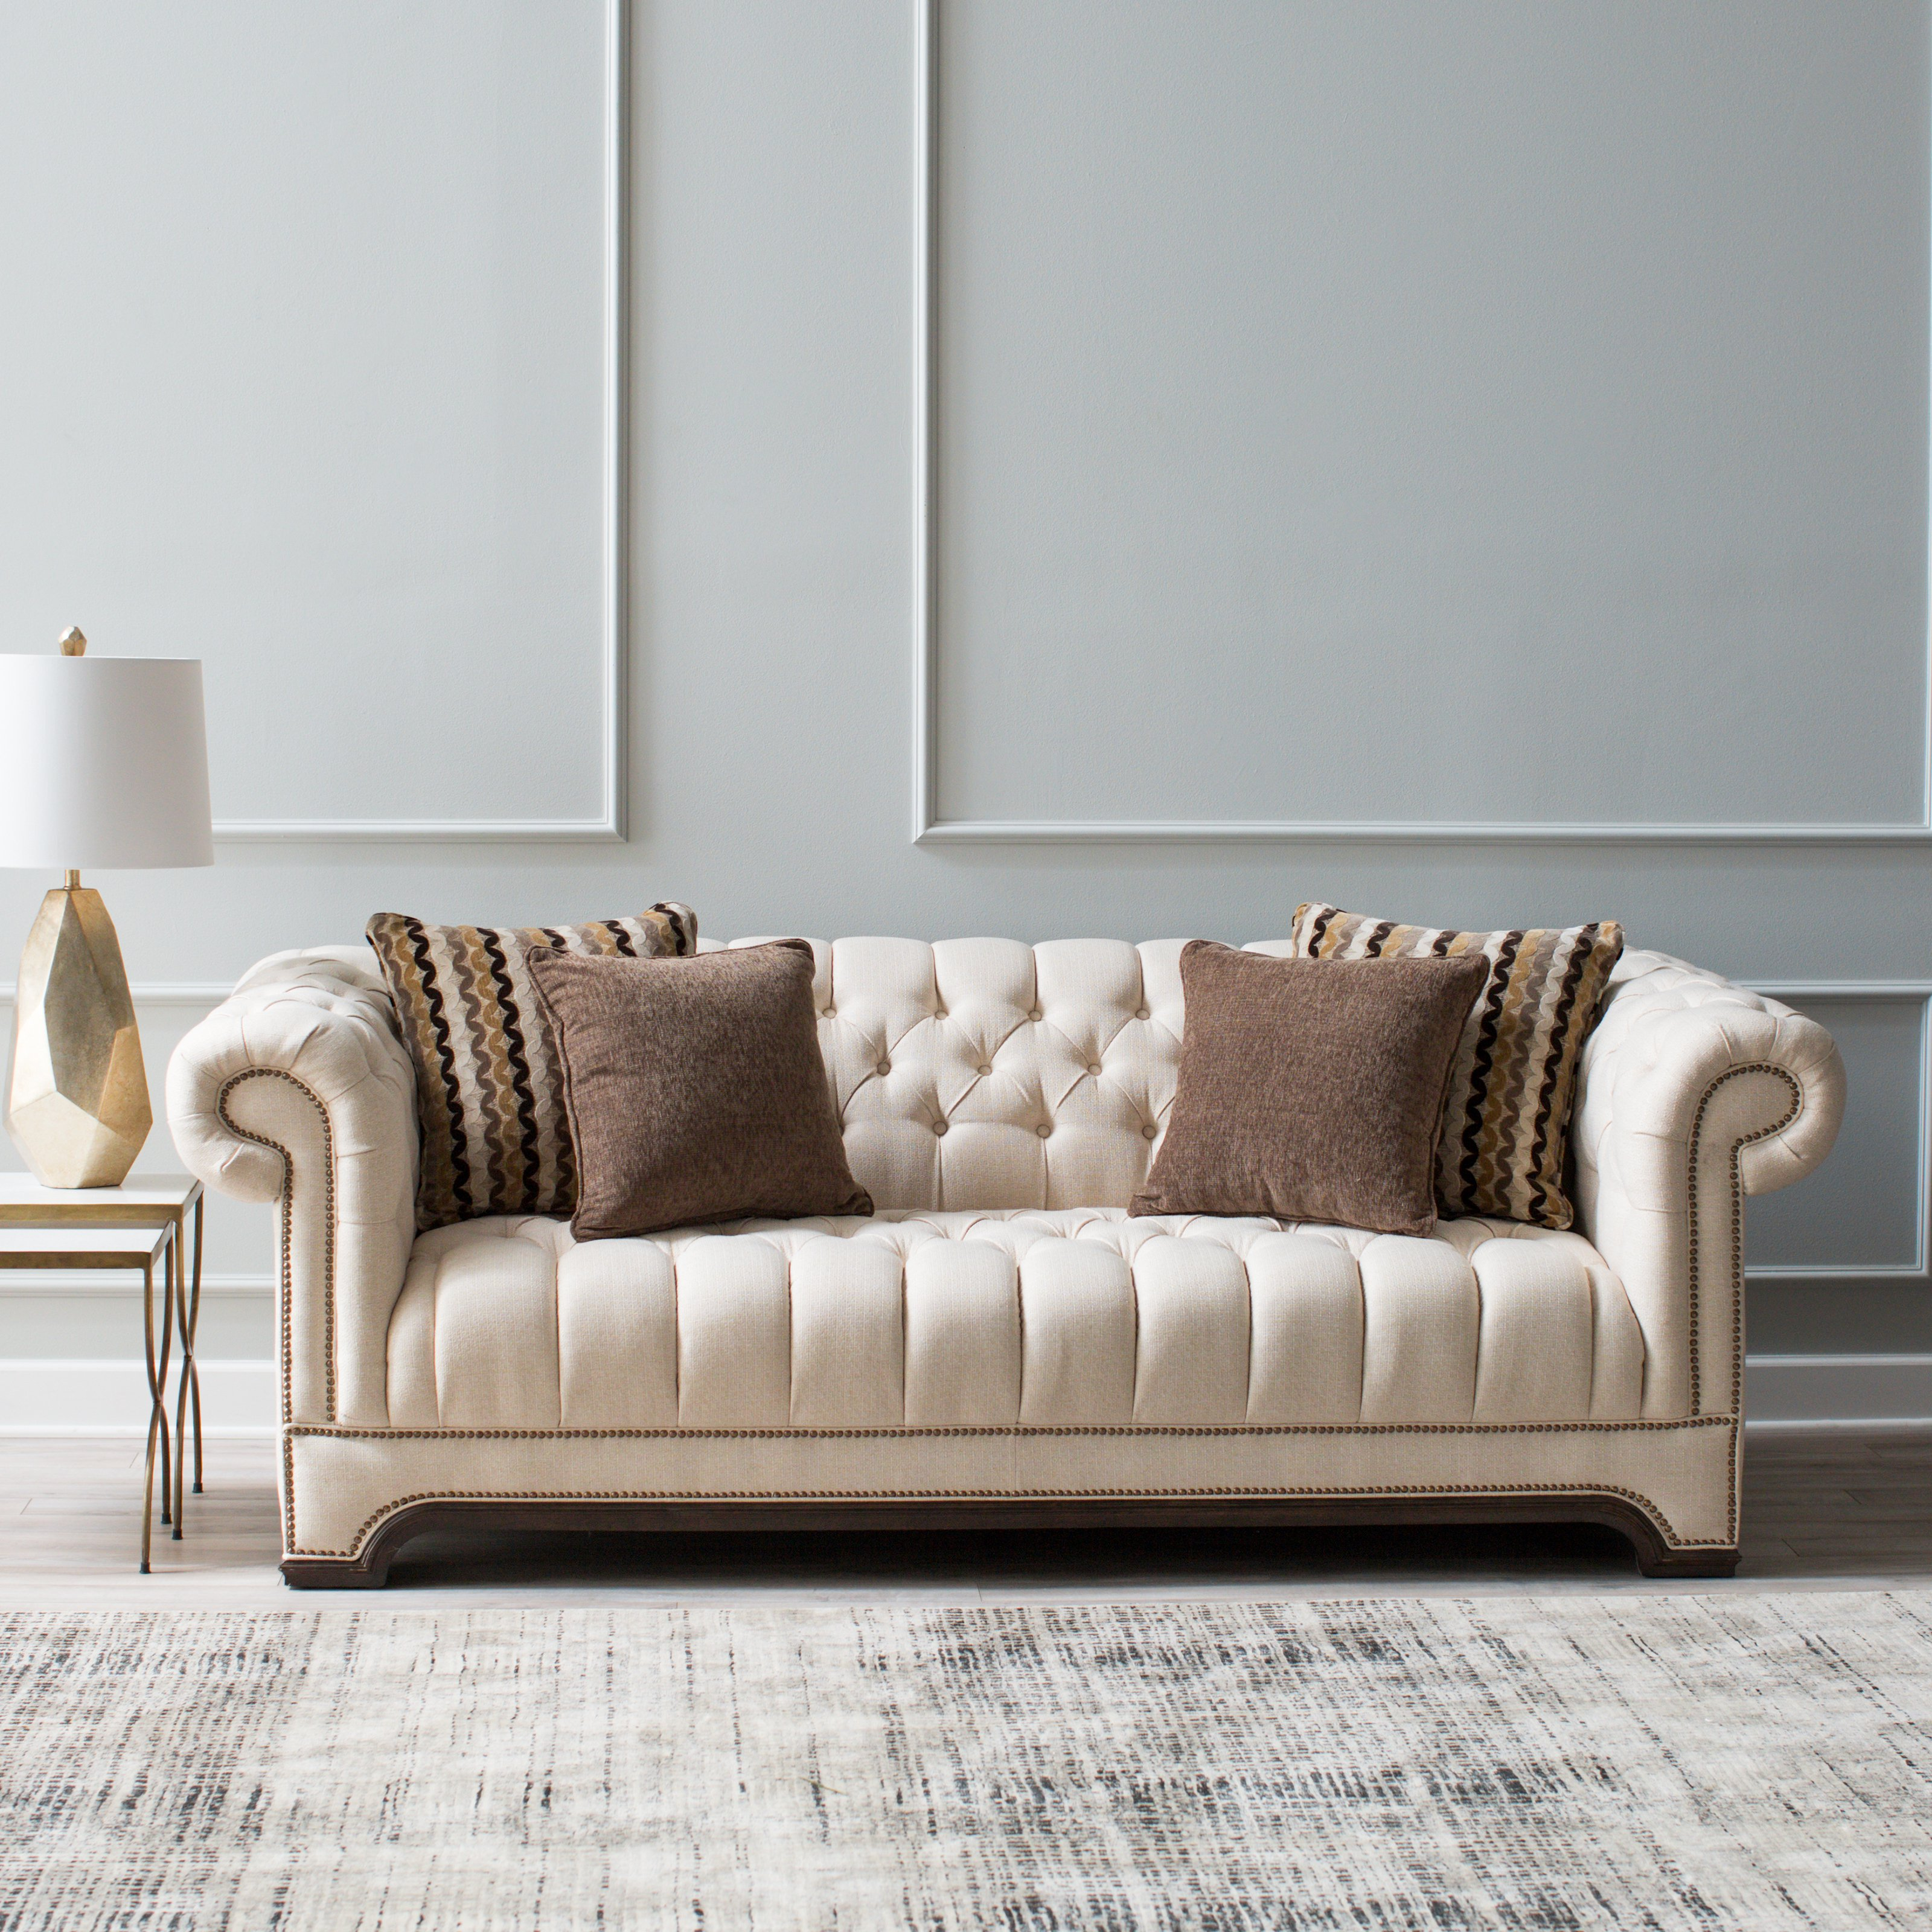 Awesome Brown And White Sofa 77 On Contemporary Sofa Inspiration with Brown And White Sofa